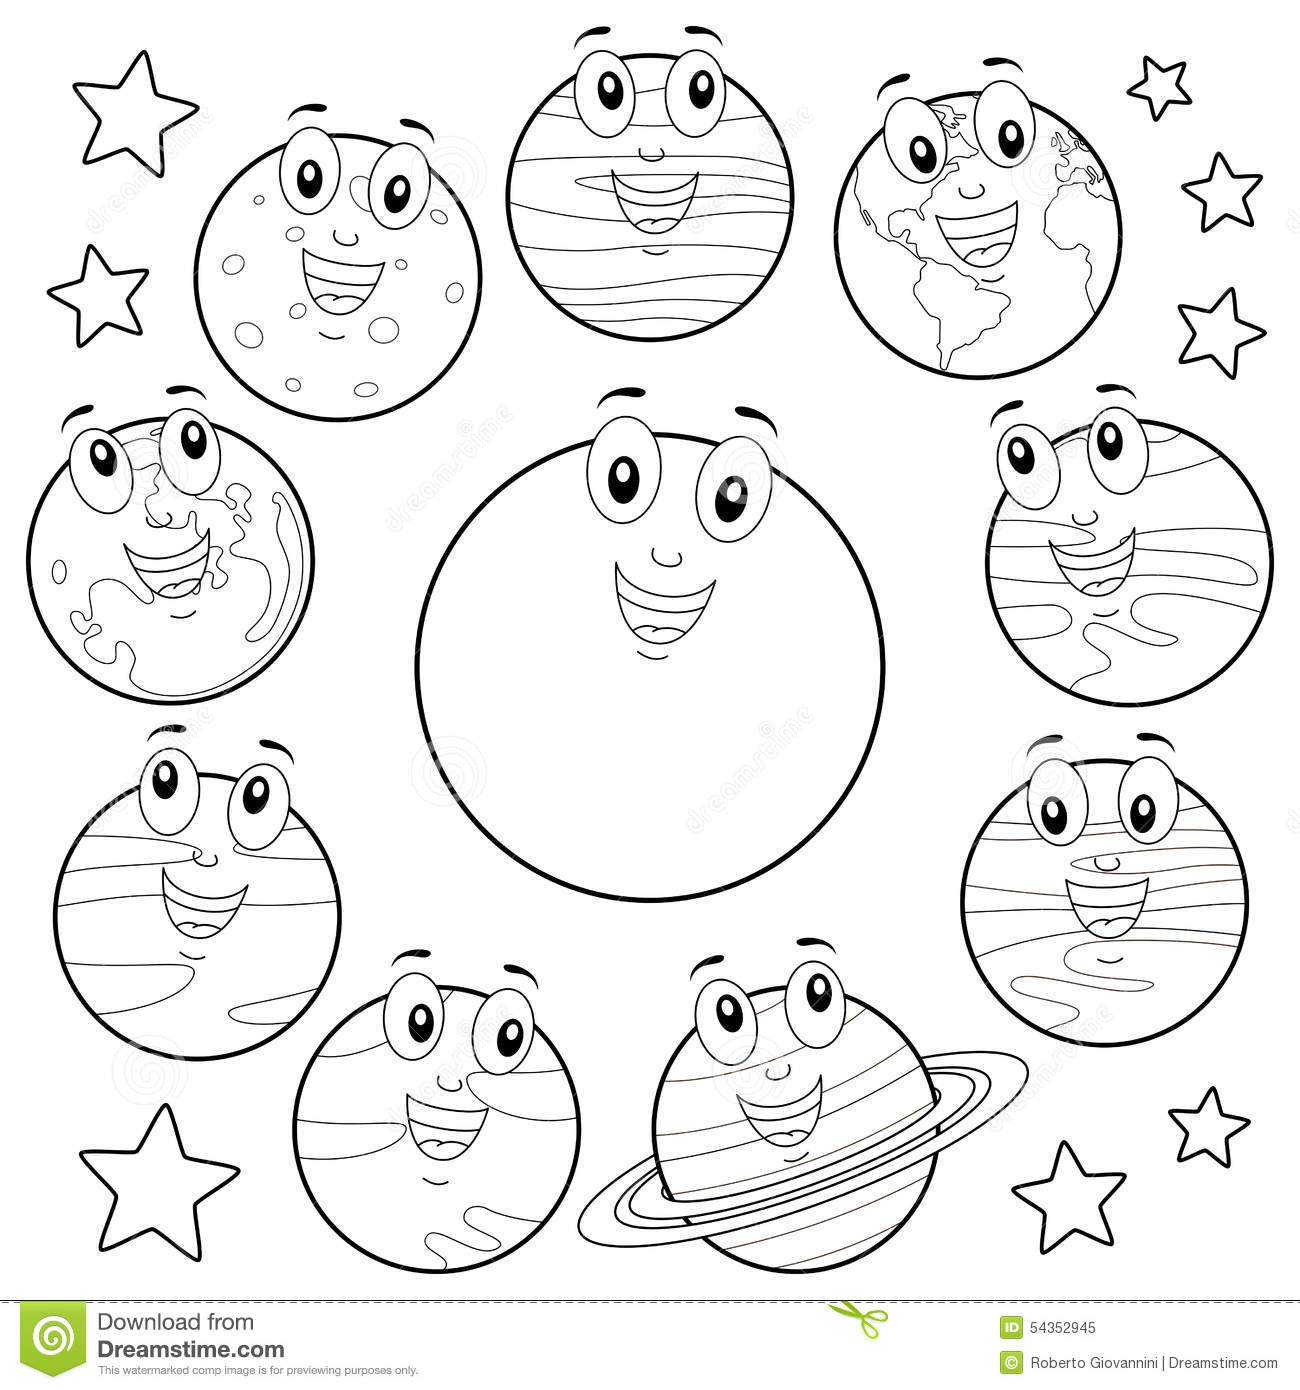 solar system coloring pages - 800×800